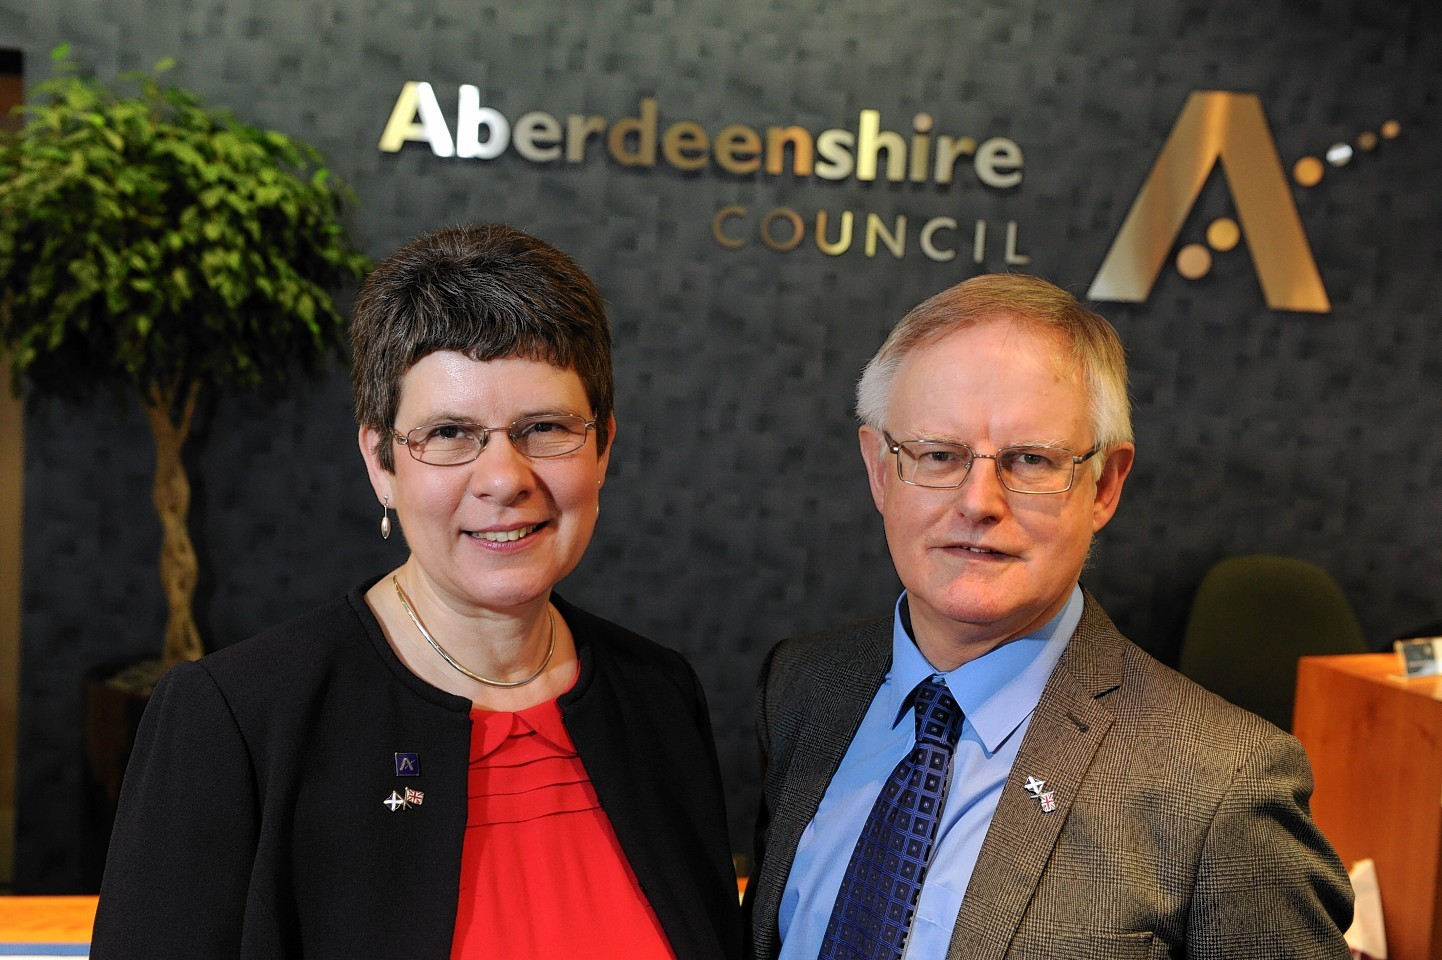 Labour councillors Alison Evison and Raymond Christie have quit Aberdeenshire Council's ruling administration